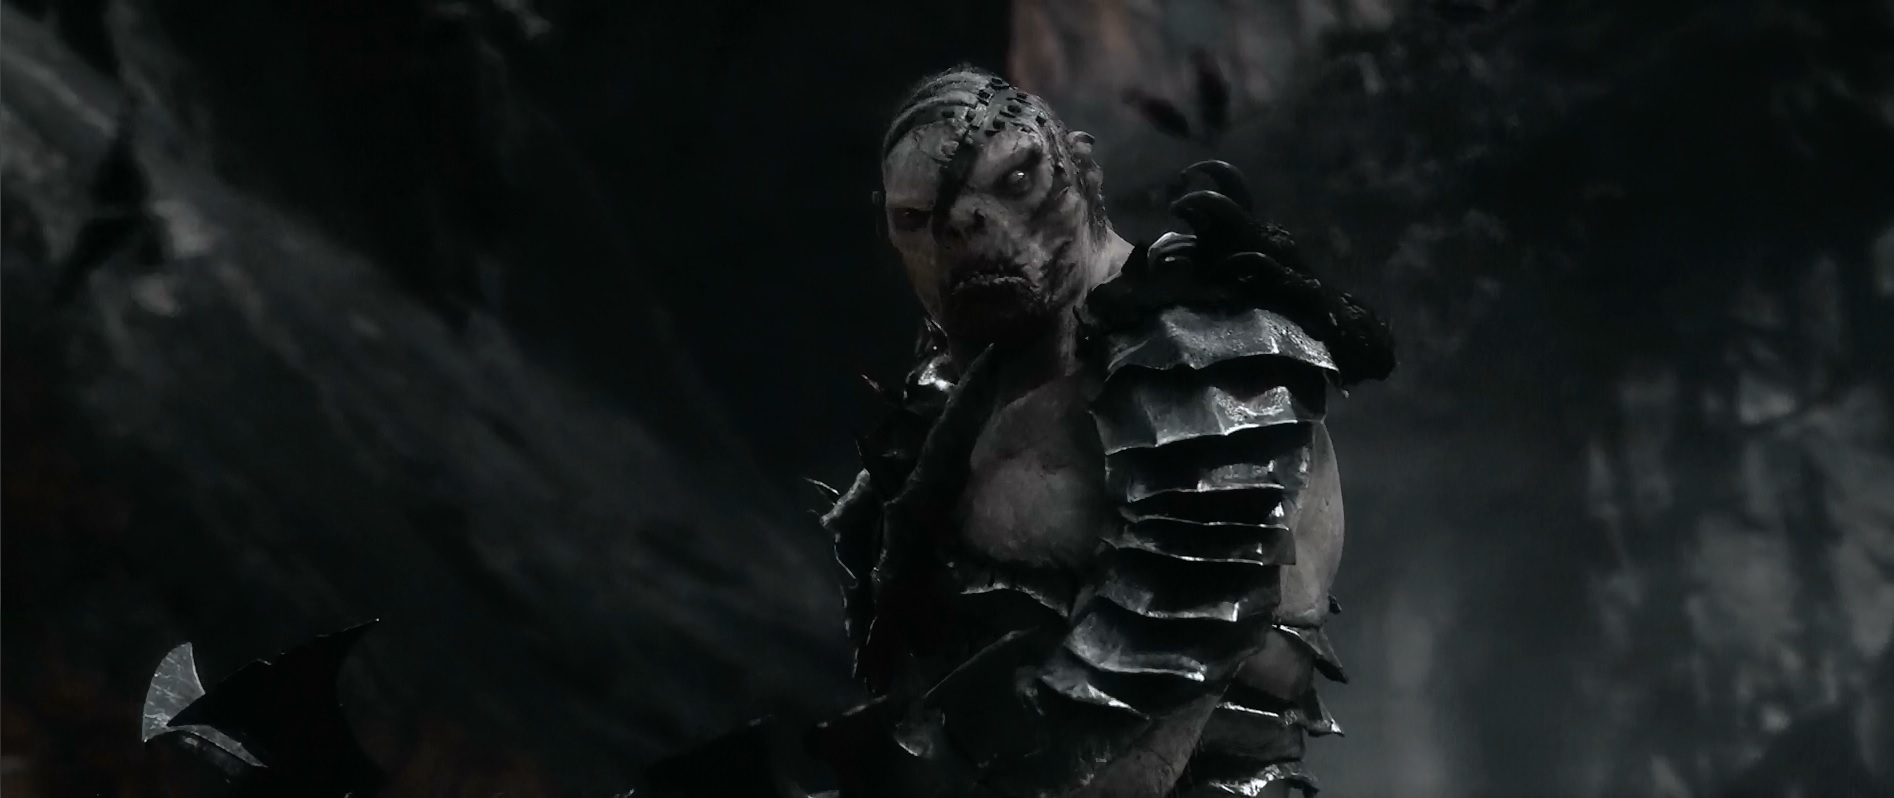 Bolg  The One Wiki to Rule Them All  FANDOM powered by Wikia